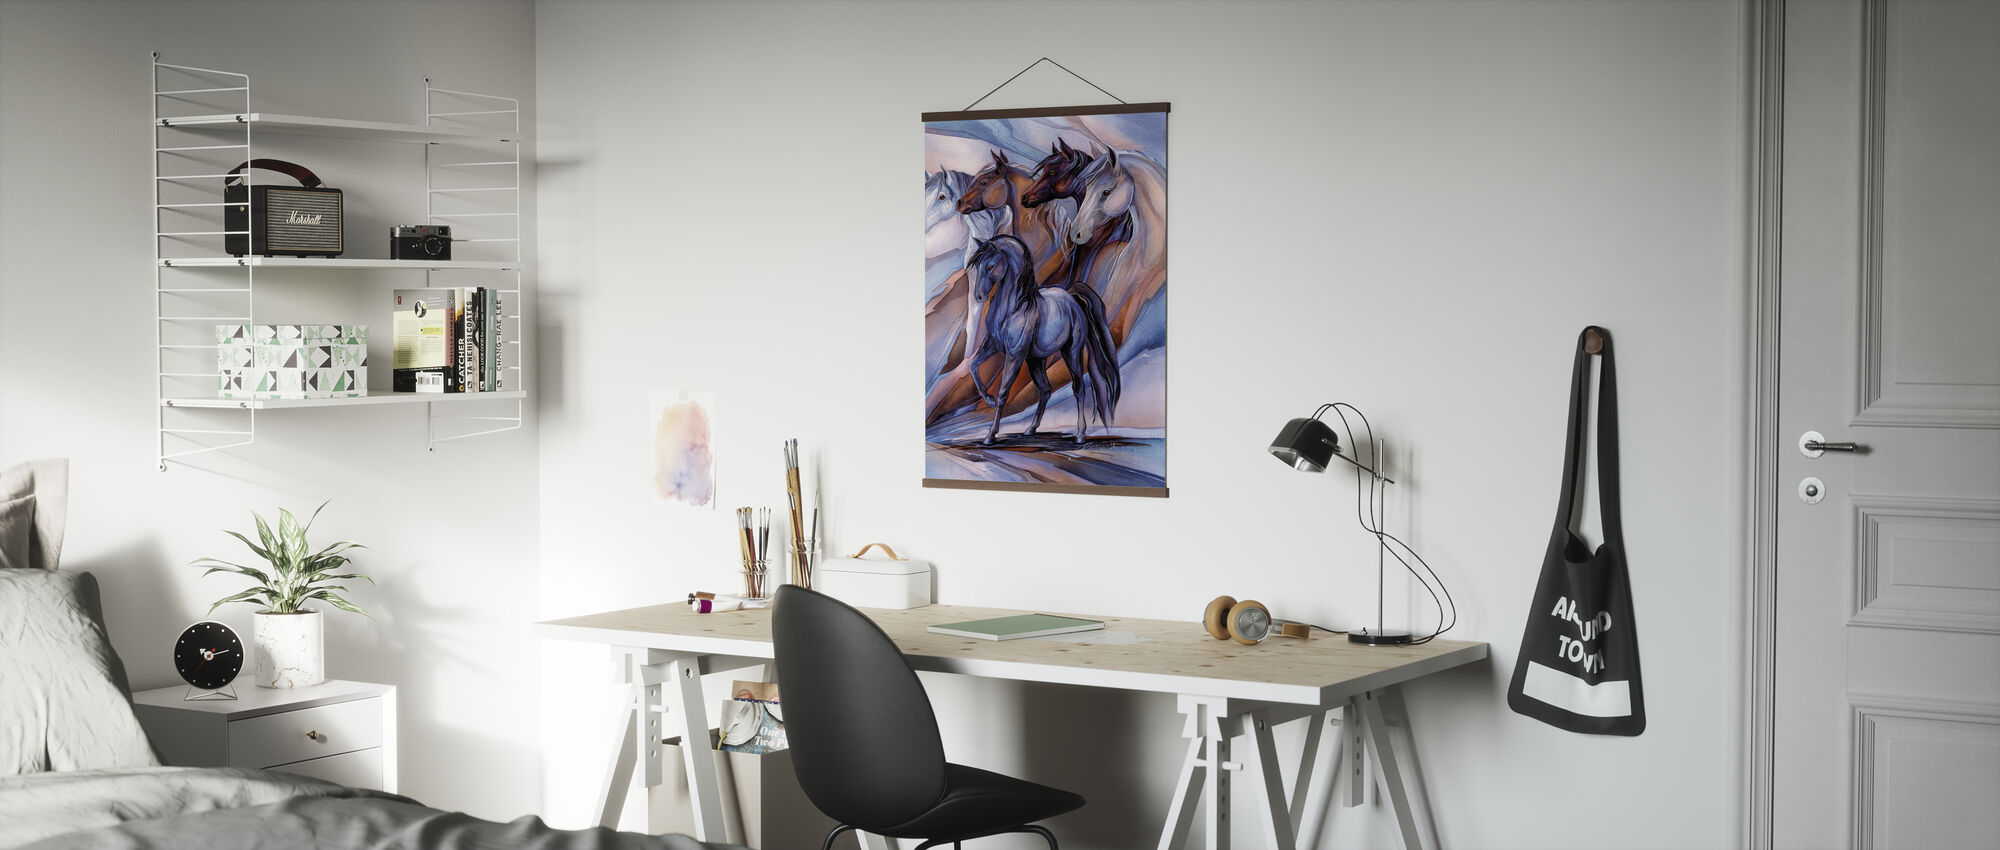 Inspired by the Five Horses - Poster - Office